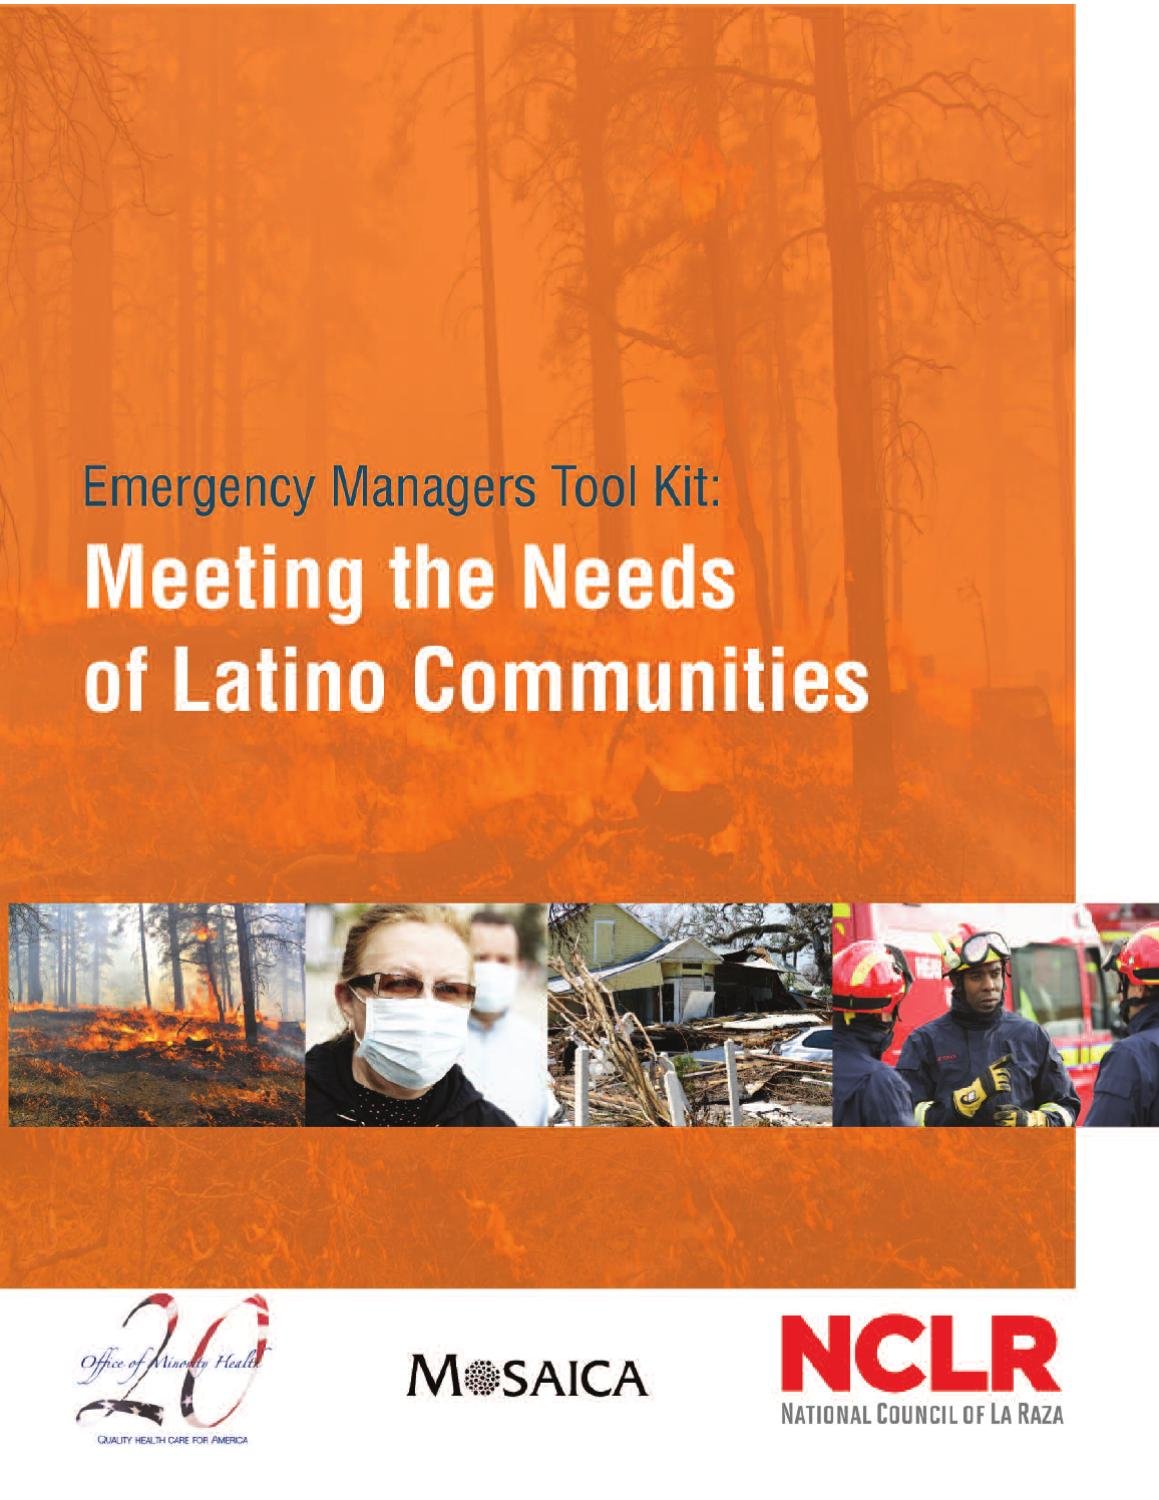 Emergency Managers Tool Kit: Meeting the Needs of Latino Communities ...